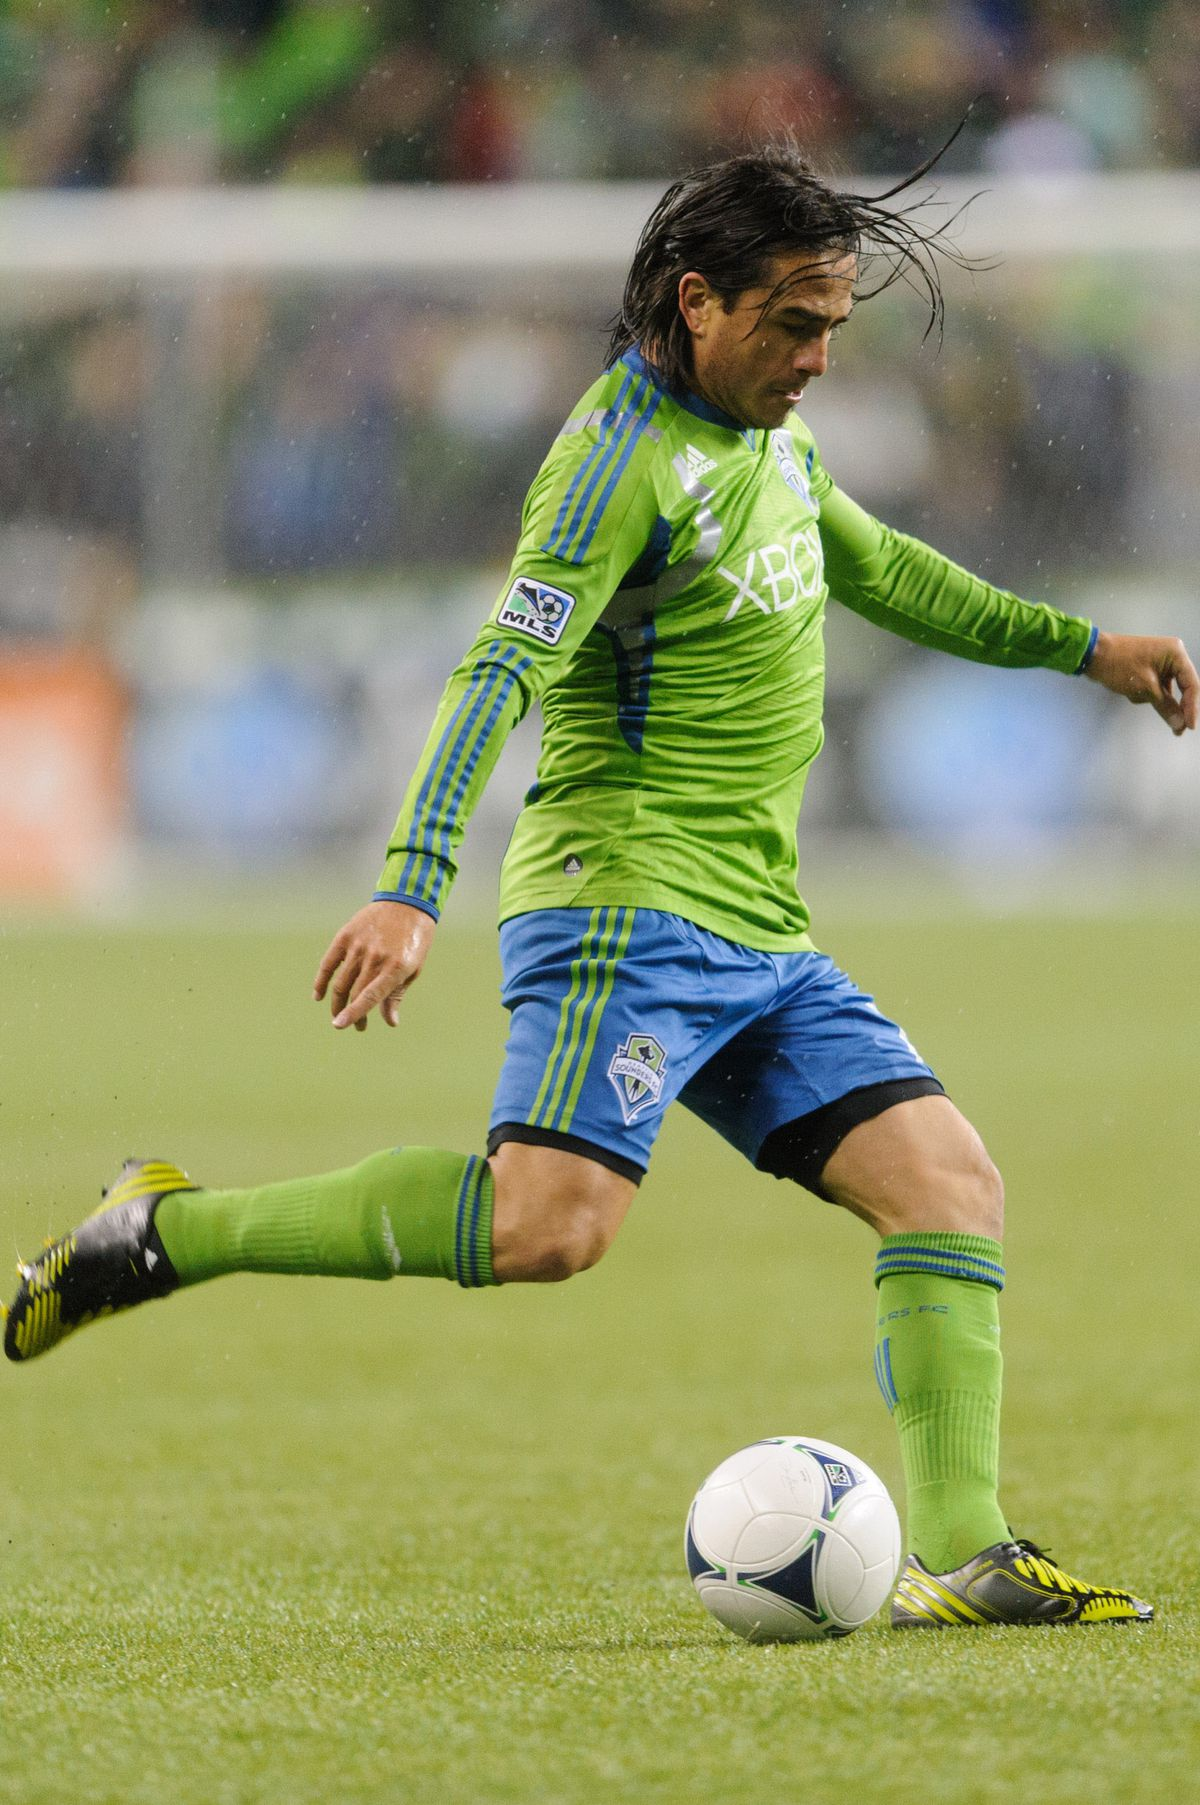 By the end of January, the Sounders offseason should come into focus for players like Mauro Rosales.